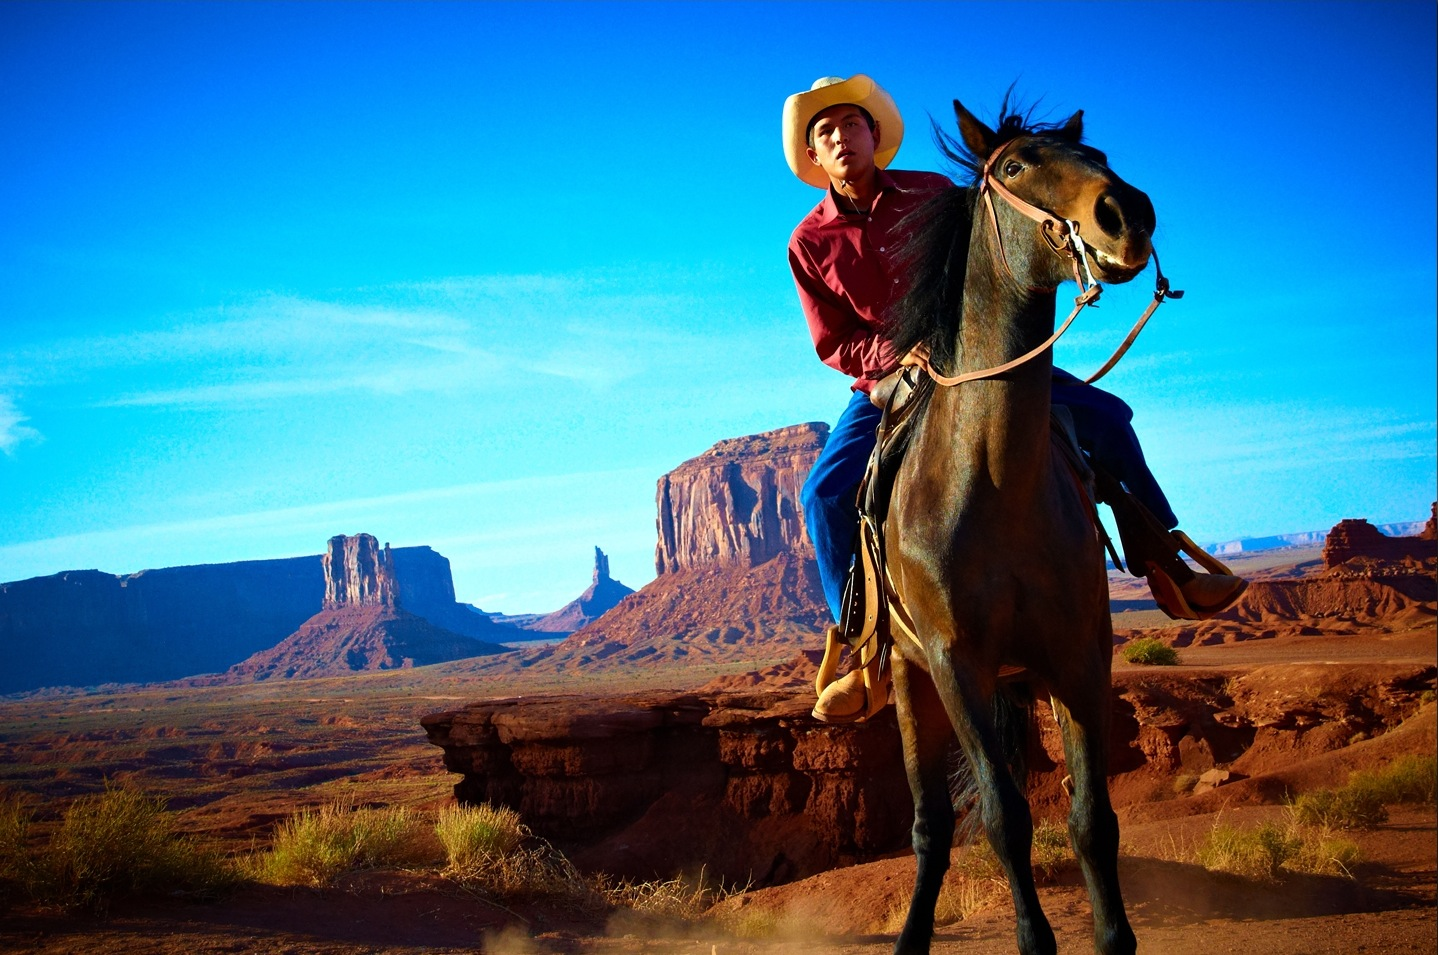 Http Commons Wikimedia Org Wiki File Navajo Cowboy 1 Jpg